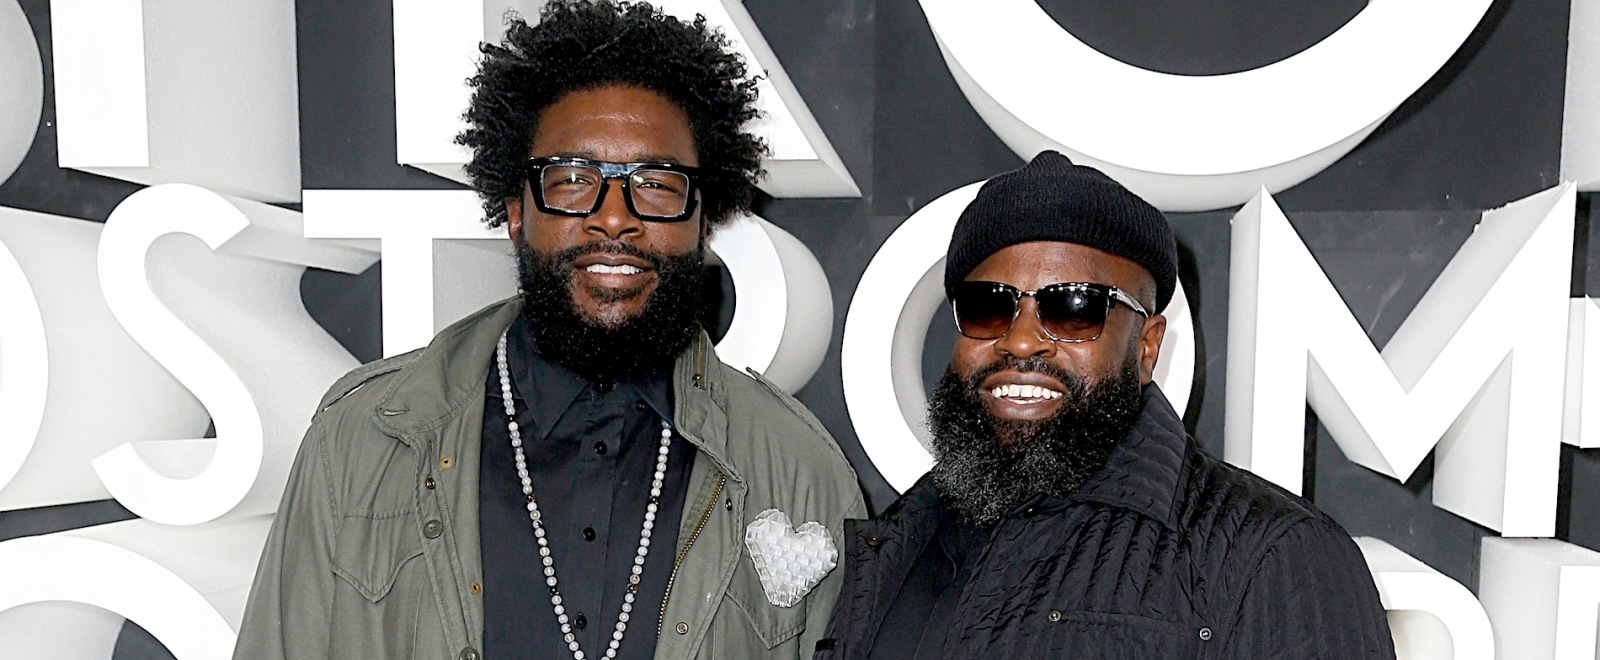 The Roots' Questlove And Black Thought Are Teaming With Disney Junior For An Animated Short Series